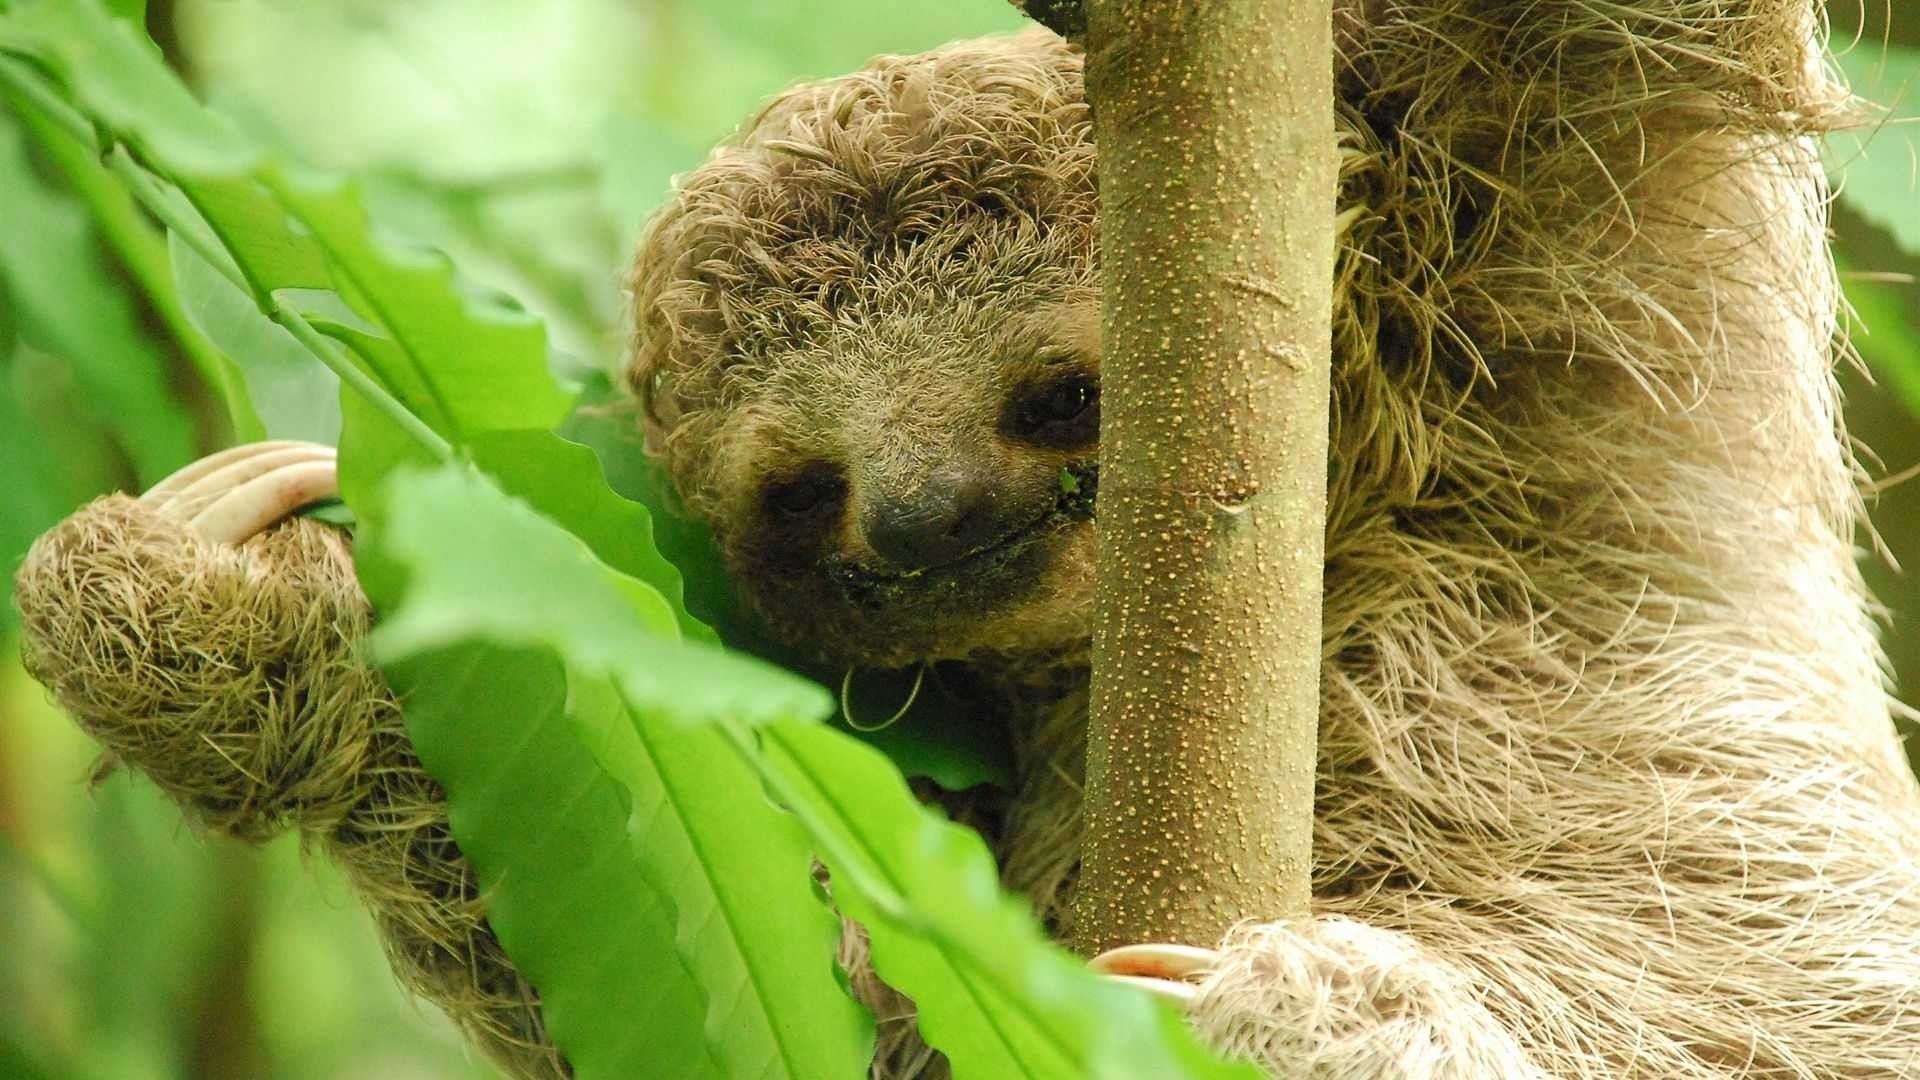 1920x1080 Baby Sloth Wallpaper Baby-sloth-300-dpi.jpg.1920x .